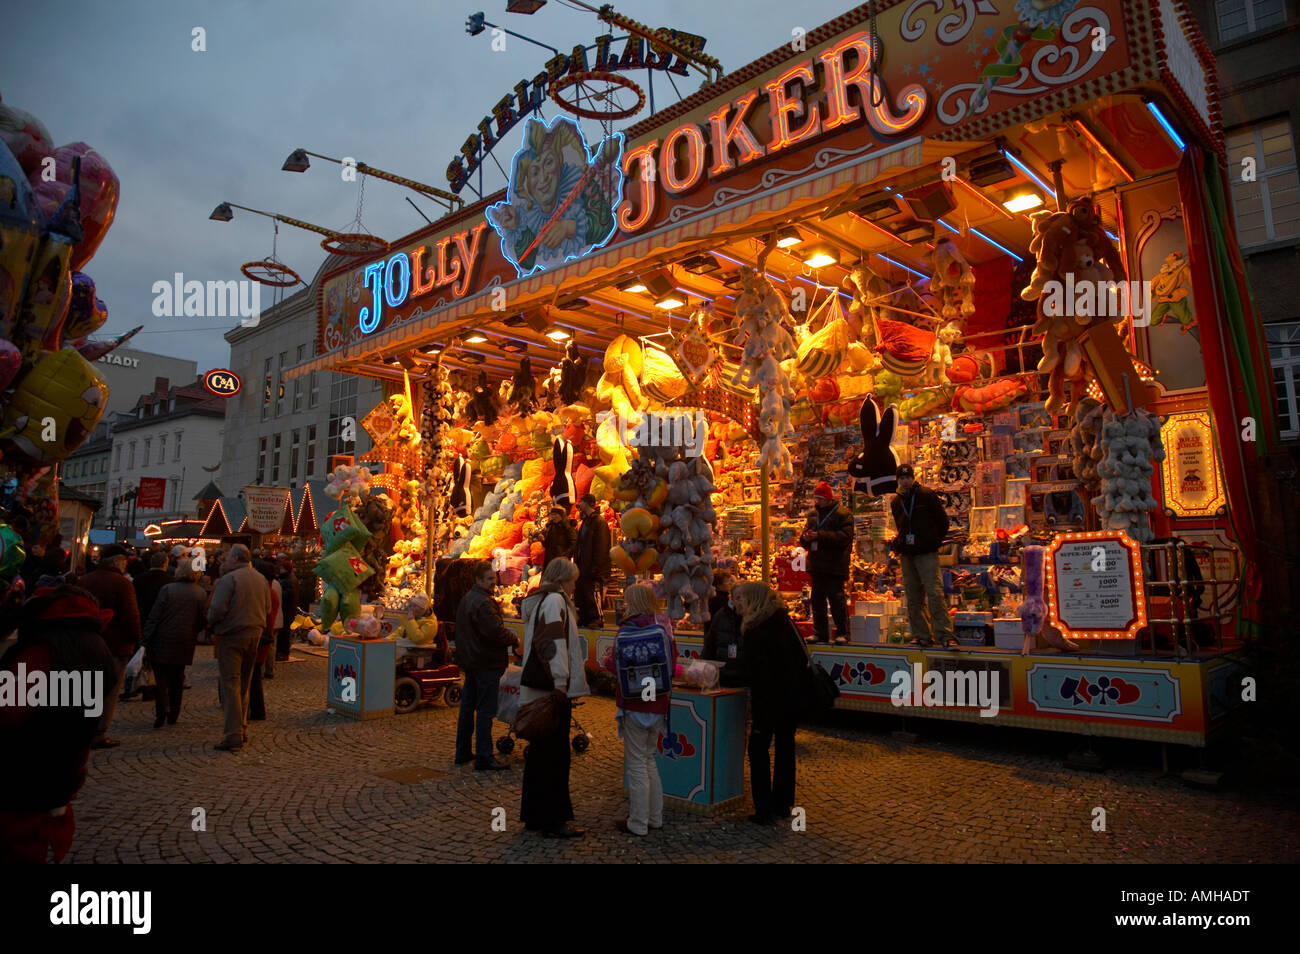 tourists walk past funfair chance game spandau christmas market stock photo royalty free image. Black Bedroom Furniture Sets. Home Design Ideas